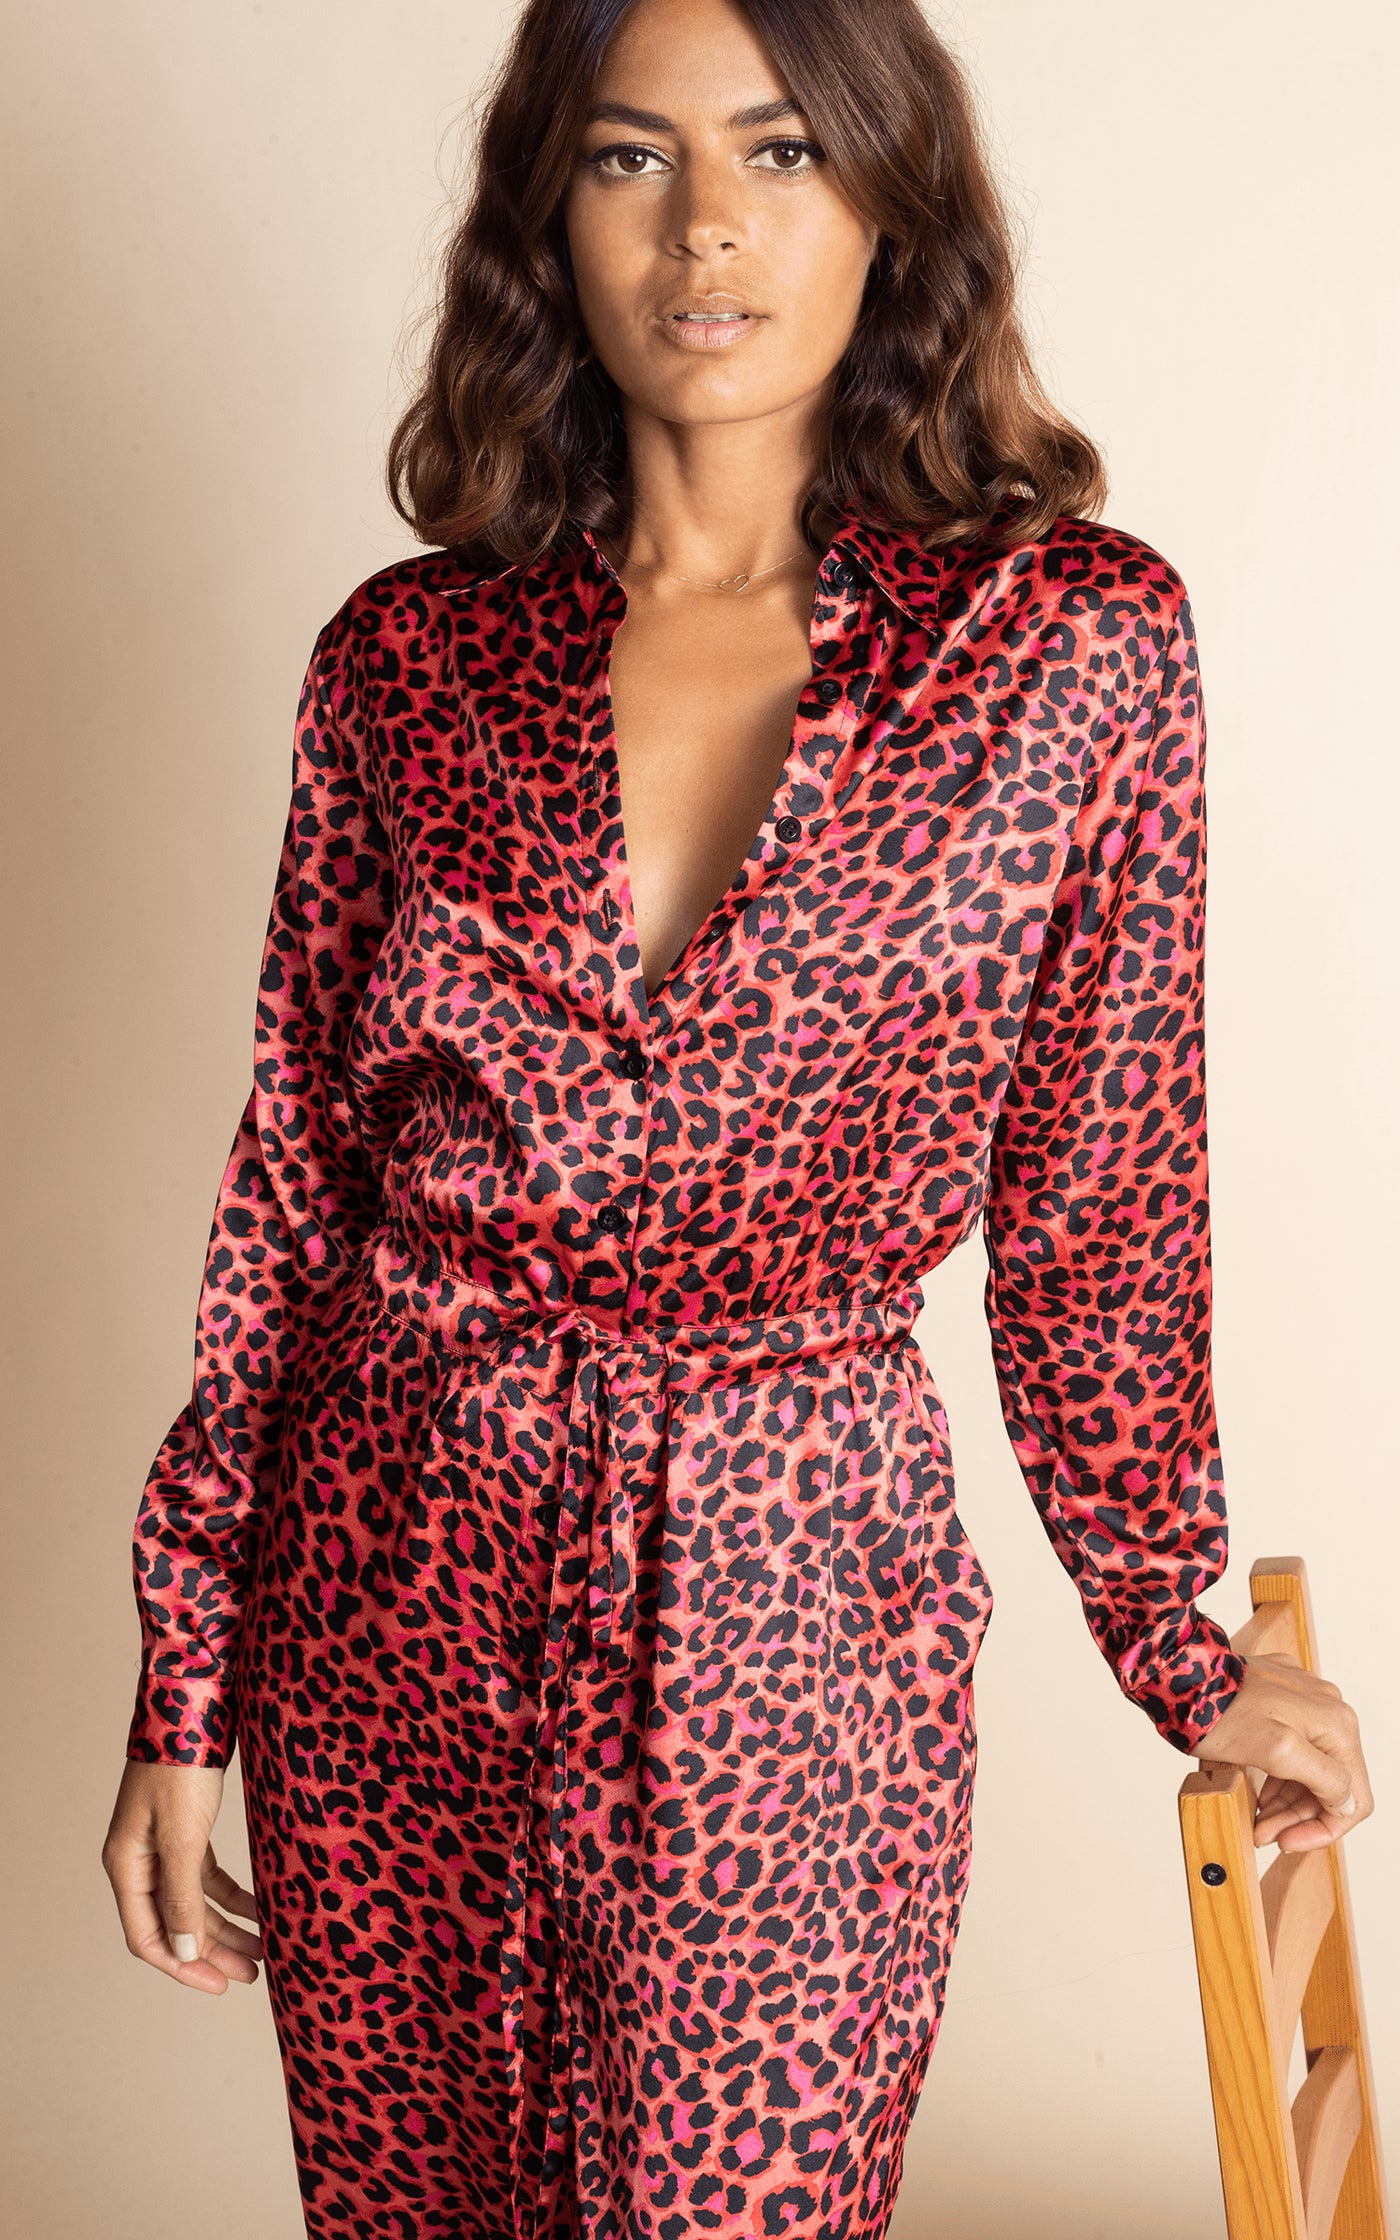 Dancing Leopard model facing forwards with hand on chair wearing Sami Jumpsuit in Ruby Red Leopard